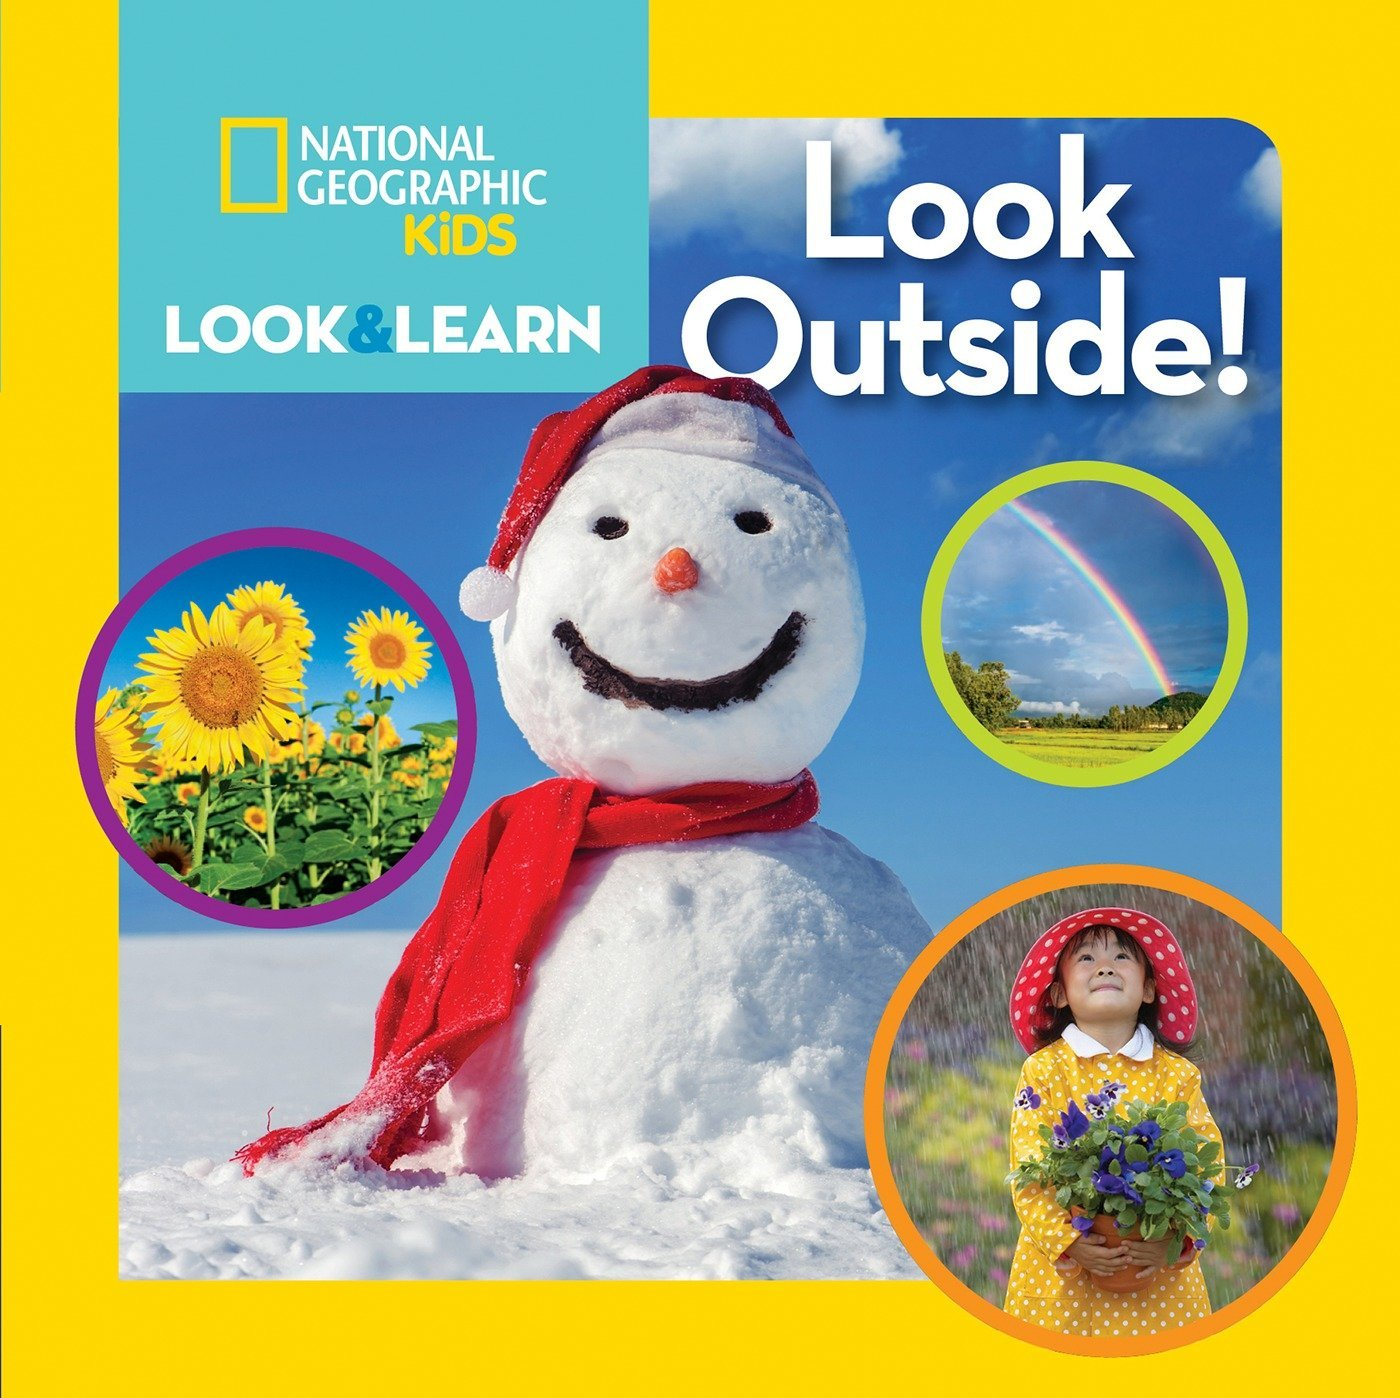 Download National Geographic Kids Look and Learn: Look Outside! (Look & Learn) PDF